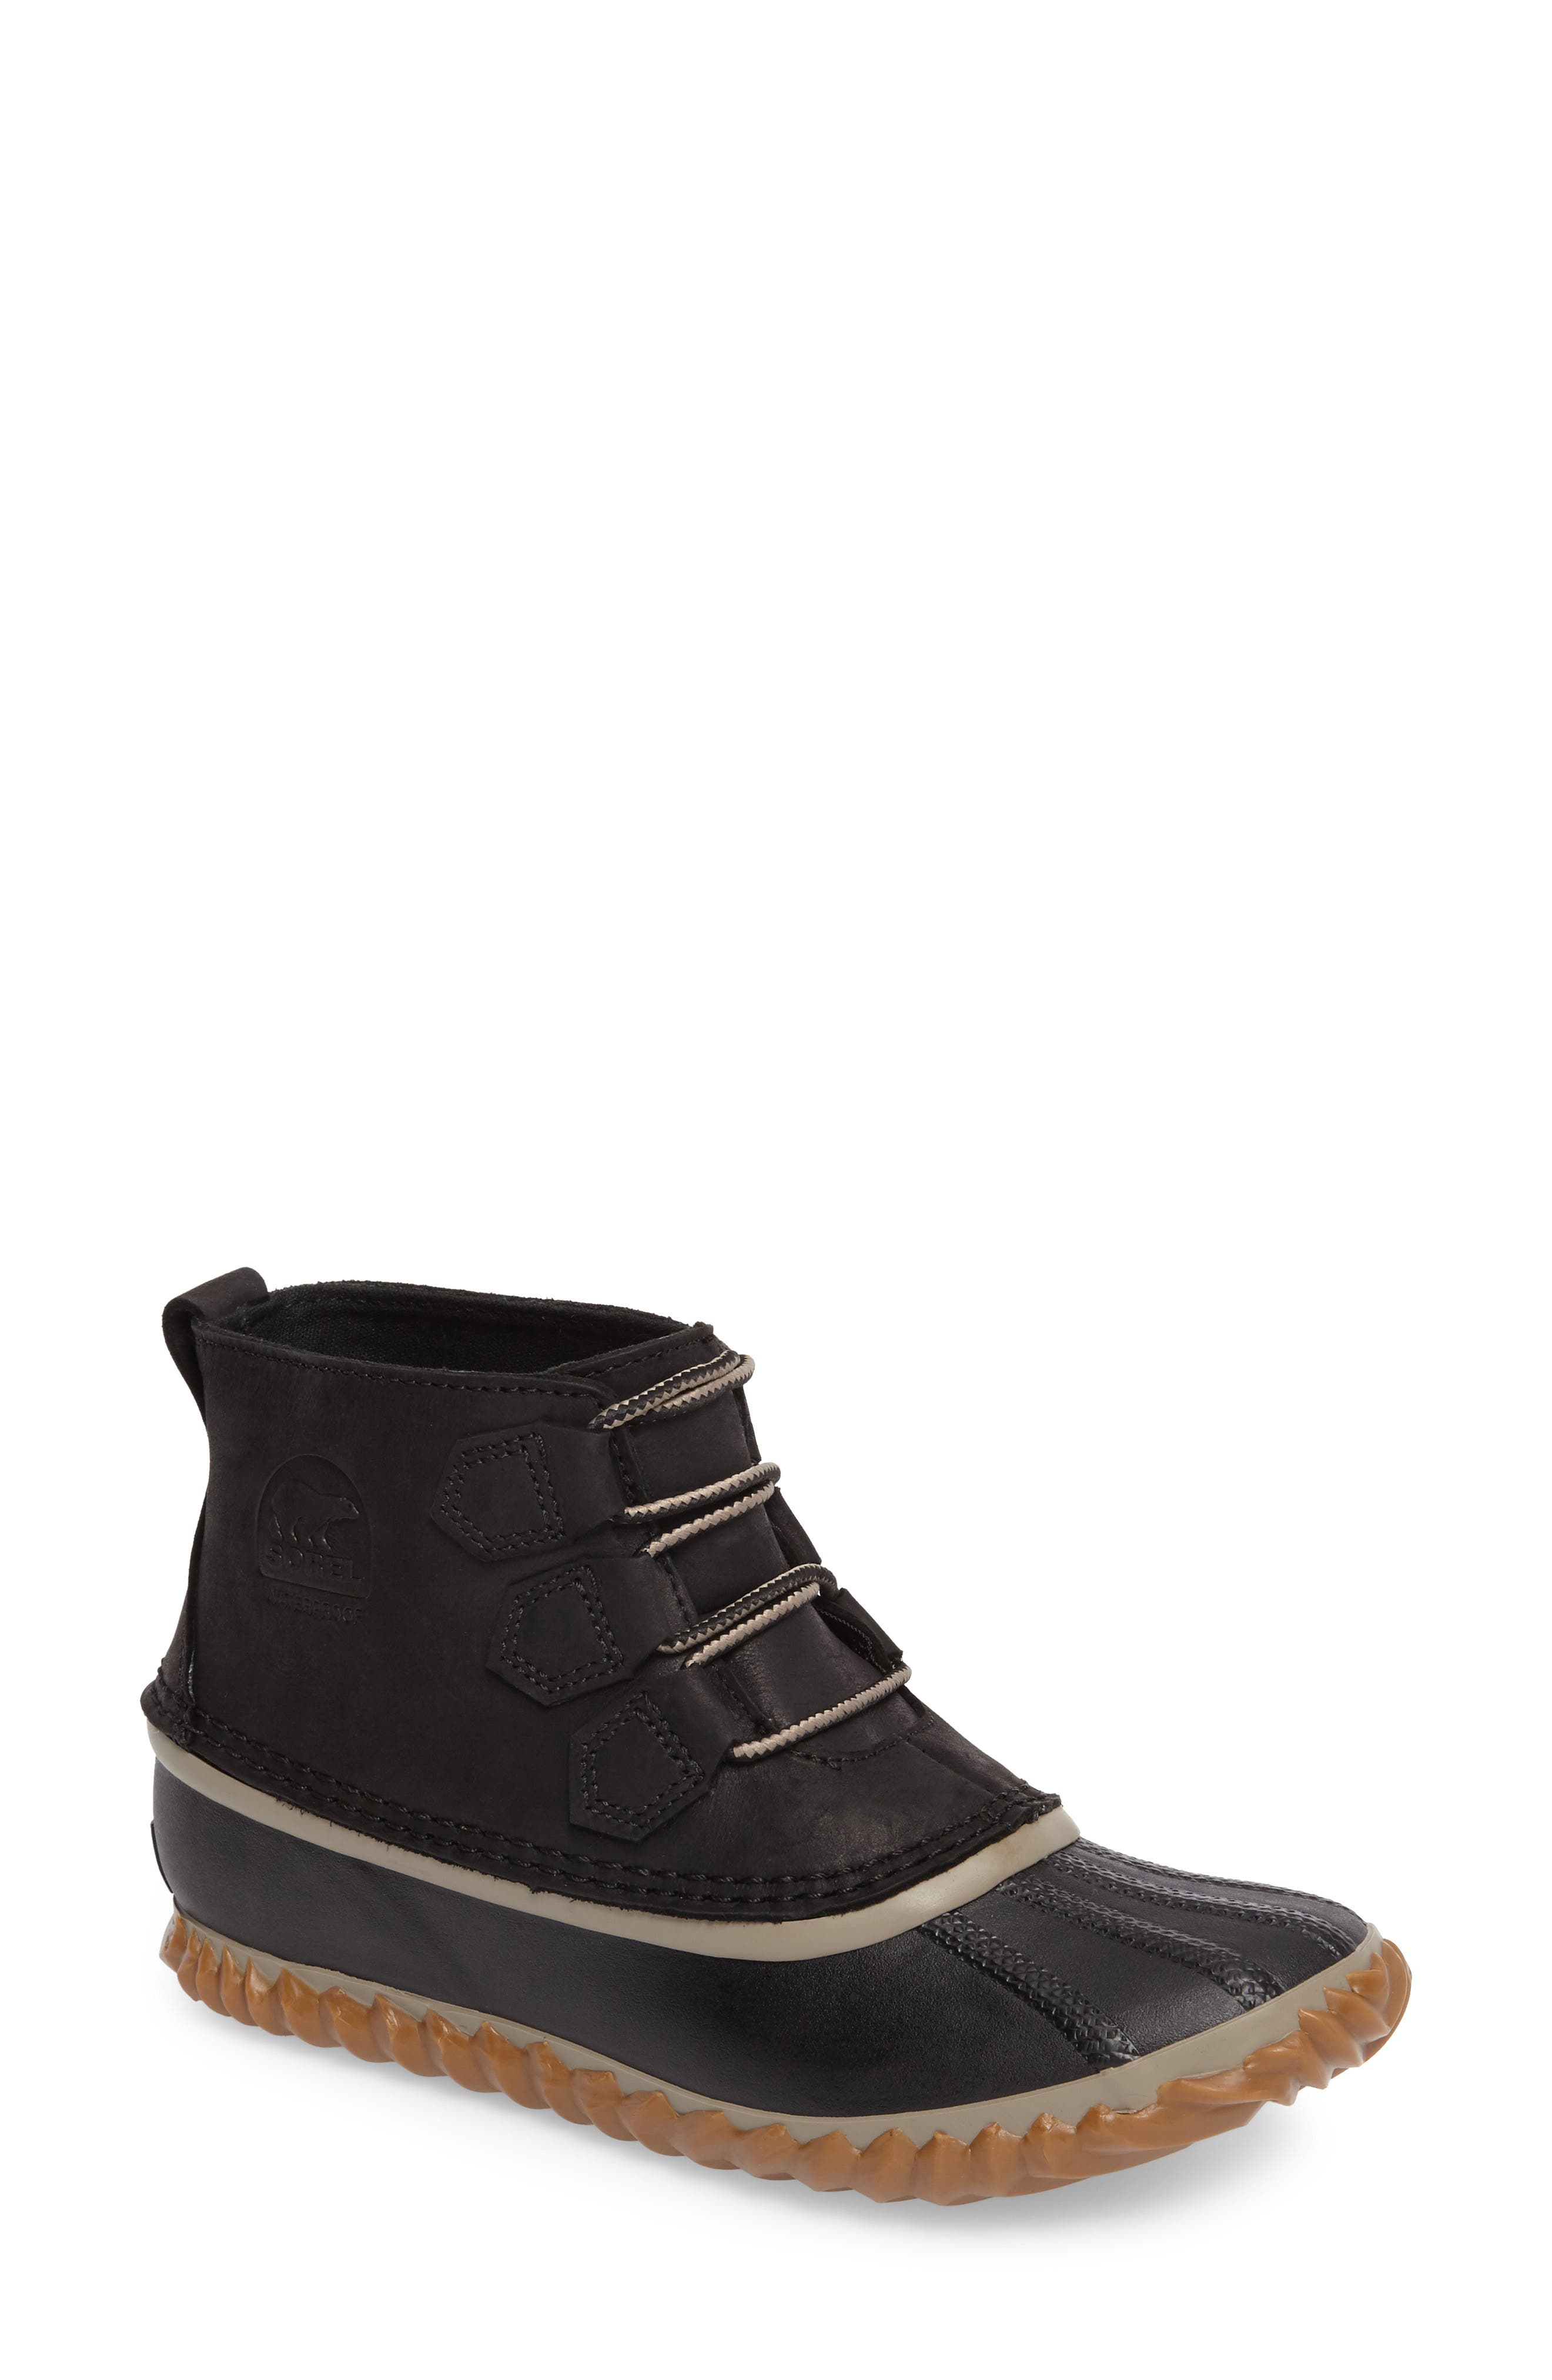 'Out N About' Leather Boot,                             Main thumbnail 6, color,